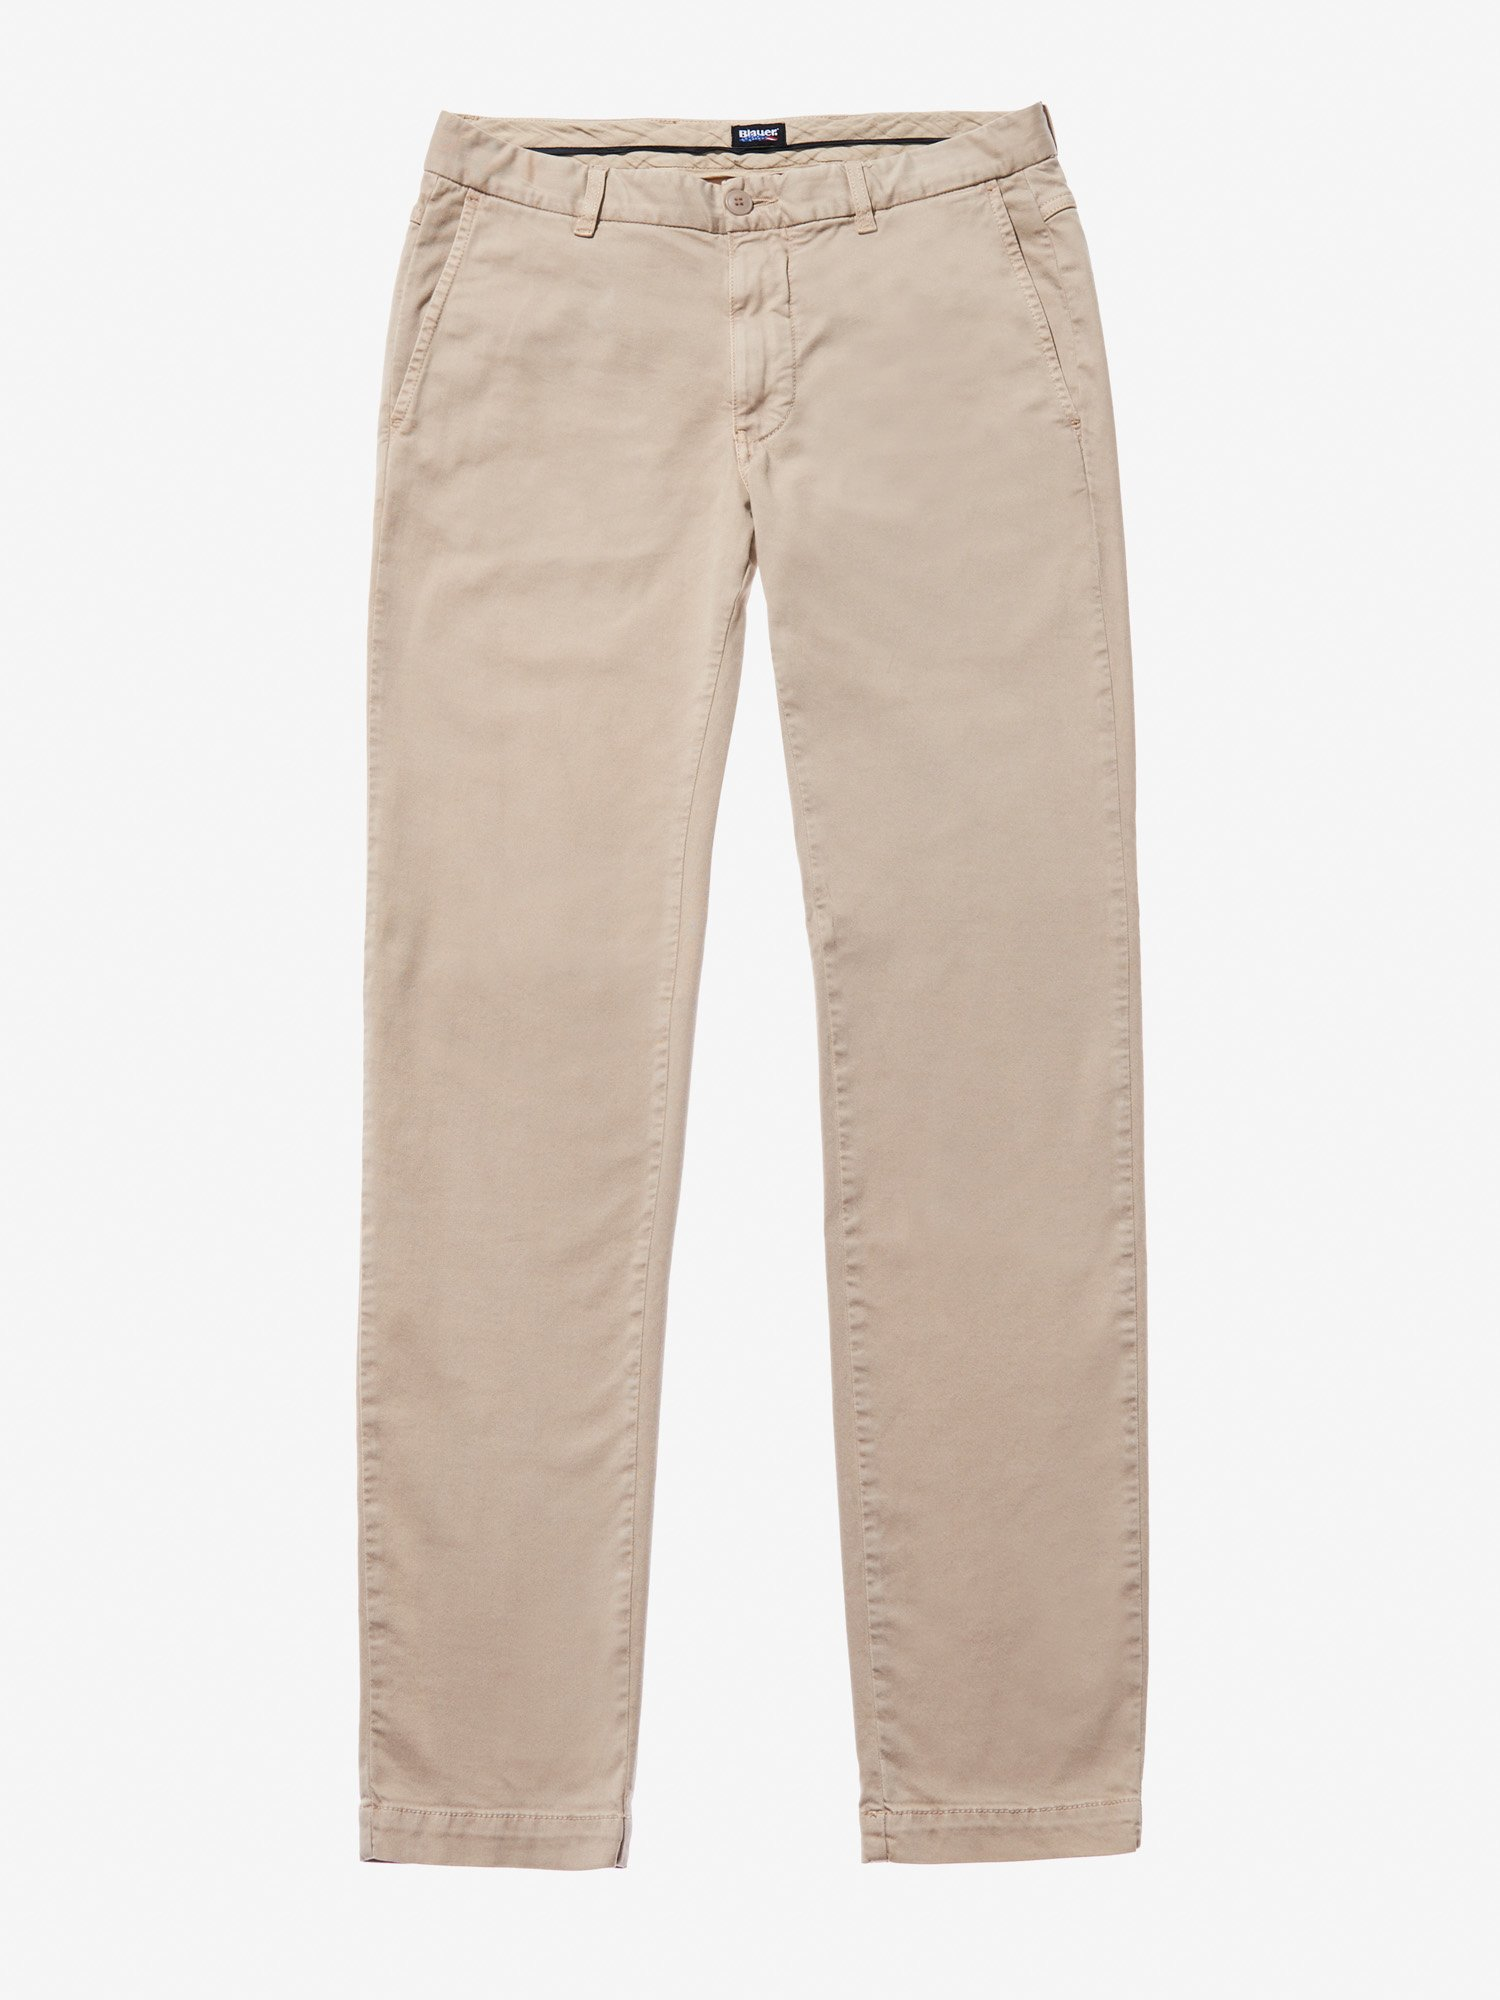 Blauer - GARMENT DYED CHINO PANTS - Doeskin - Blauer